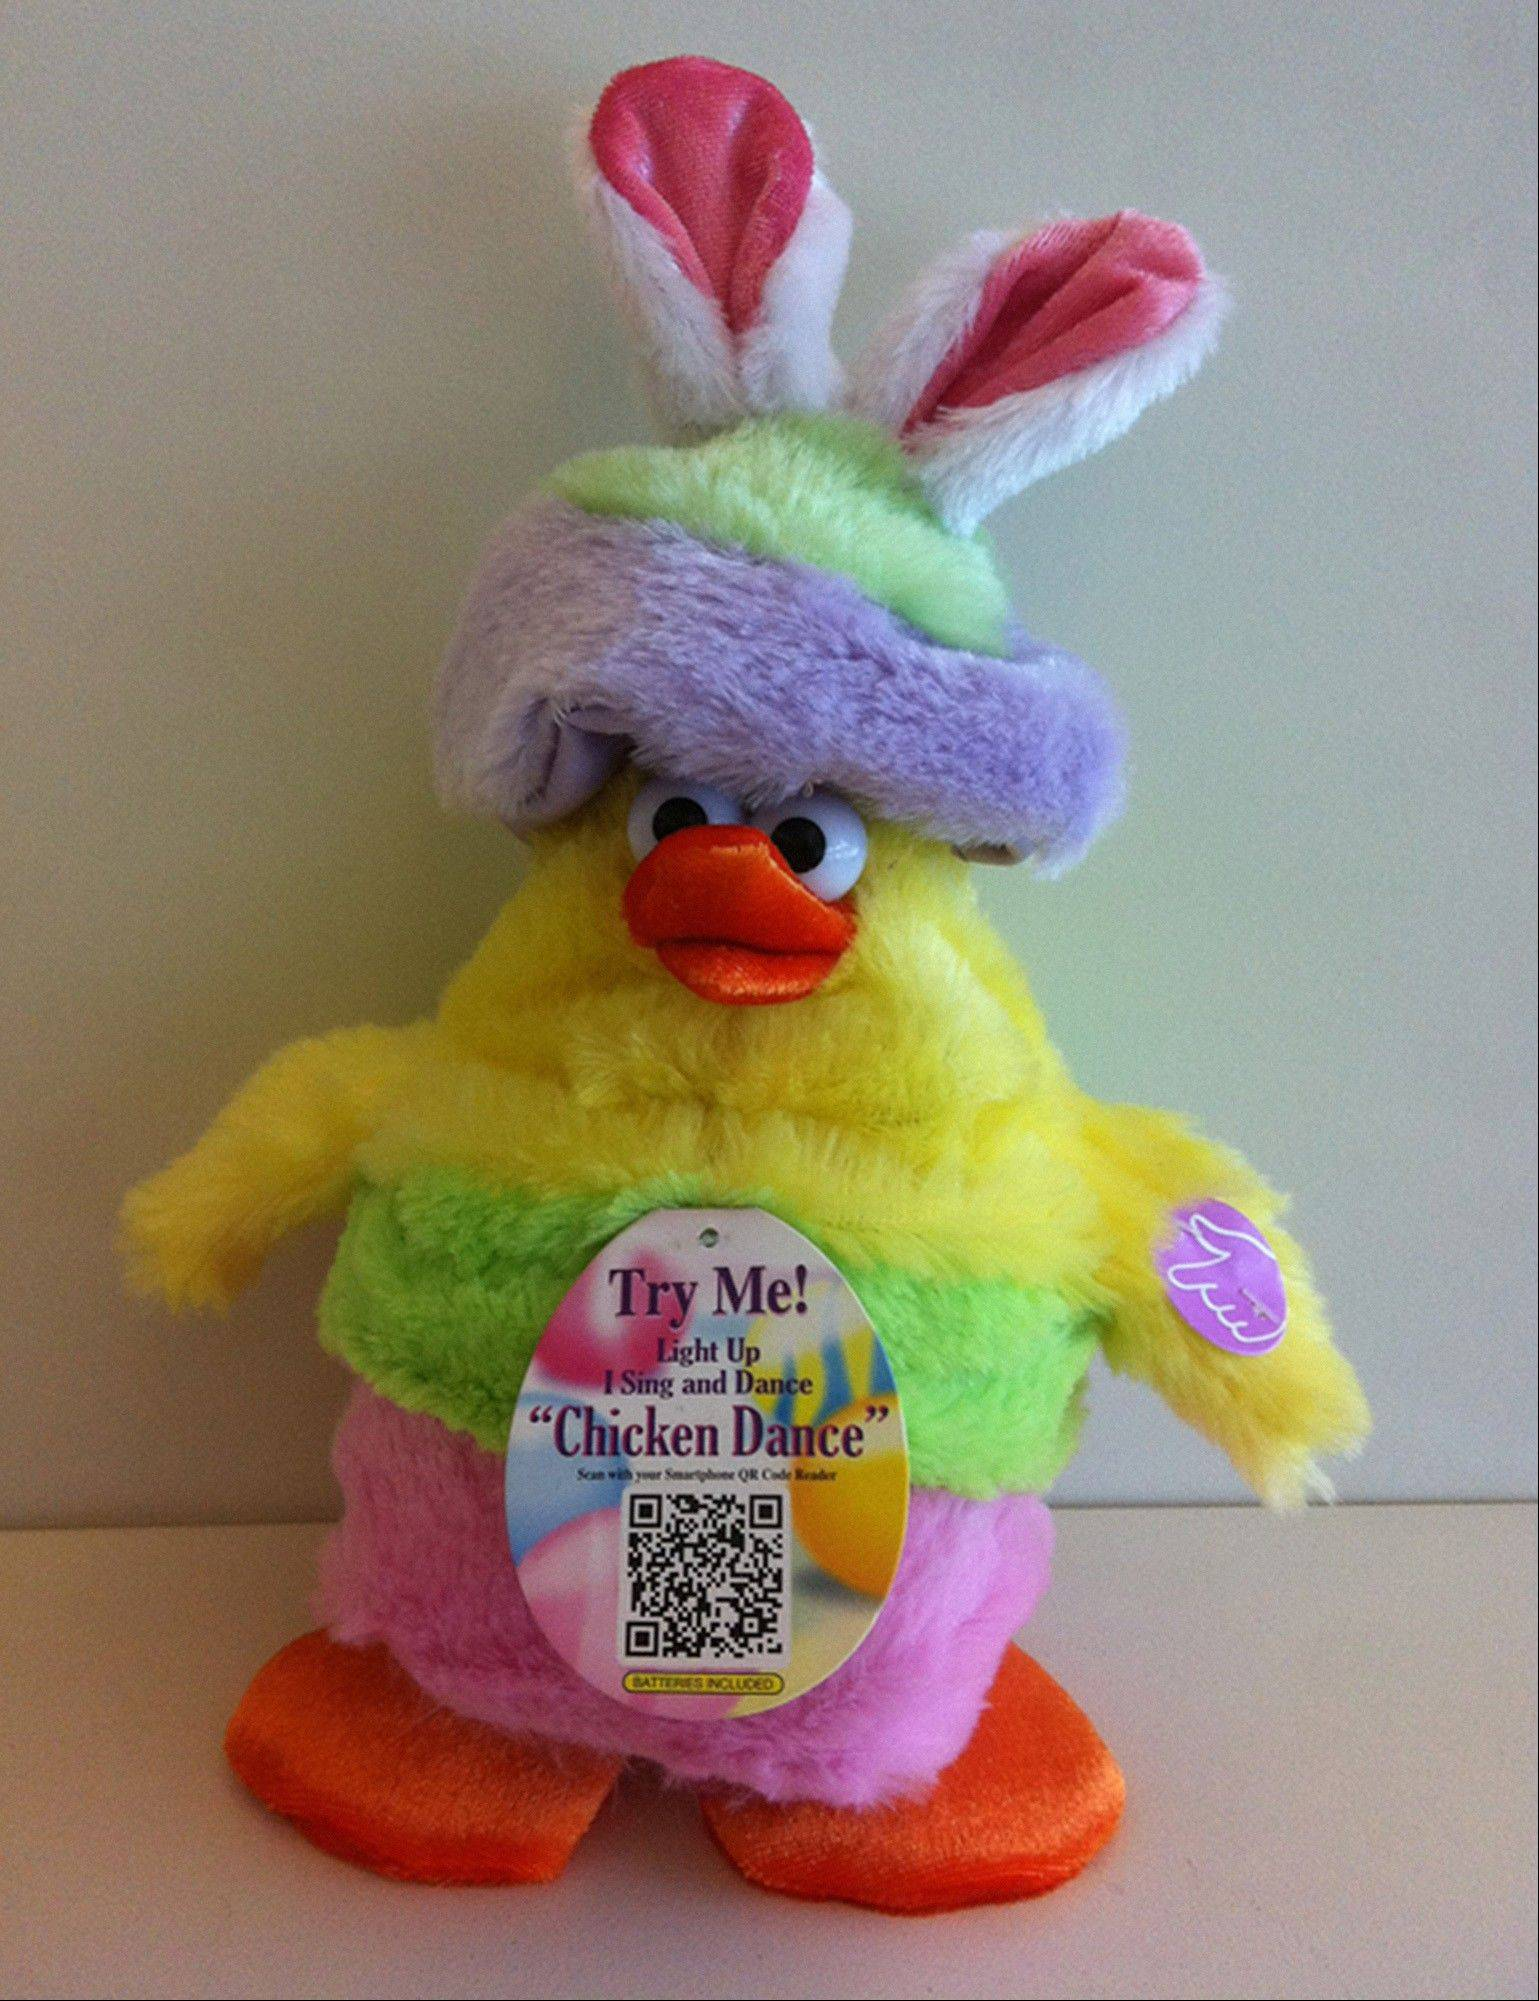 "The Dan-Dee ""Chicken Dance"" Tap Dance Easter Chick. The recalled toy plays music and dances when the left wing is squeezed, but the music can reach decibel levels that exceed the ASTM F963 standard, posing a hearing damage hazard."